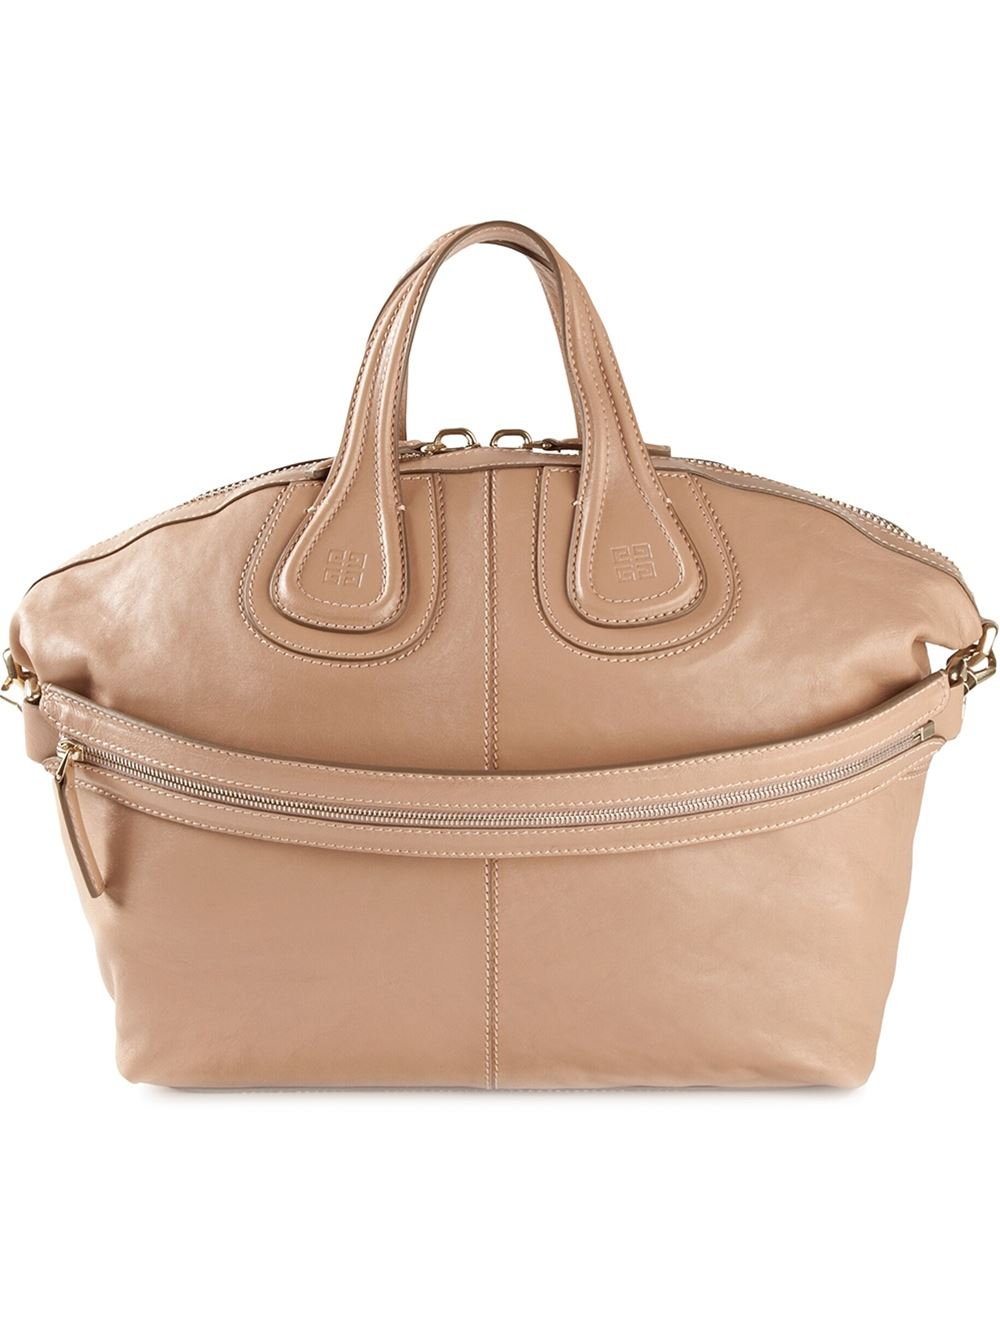 798bf8d6b6 Gallery. Previously sold at: Farfetch · Women's Givenchy Nightingale